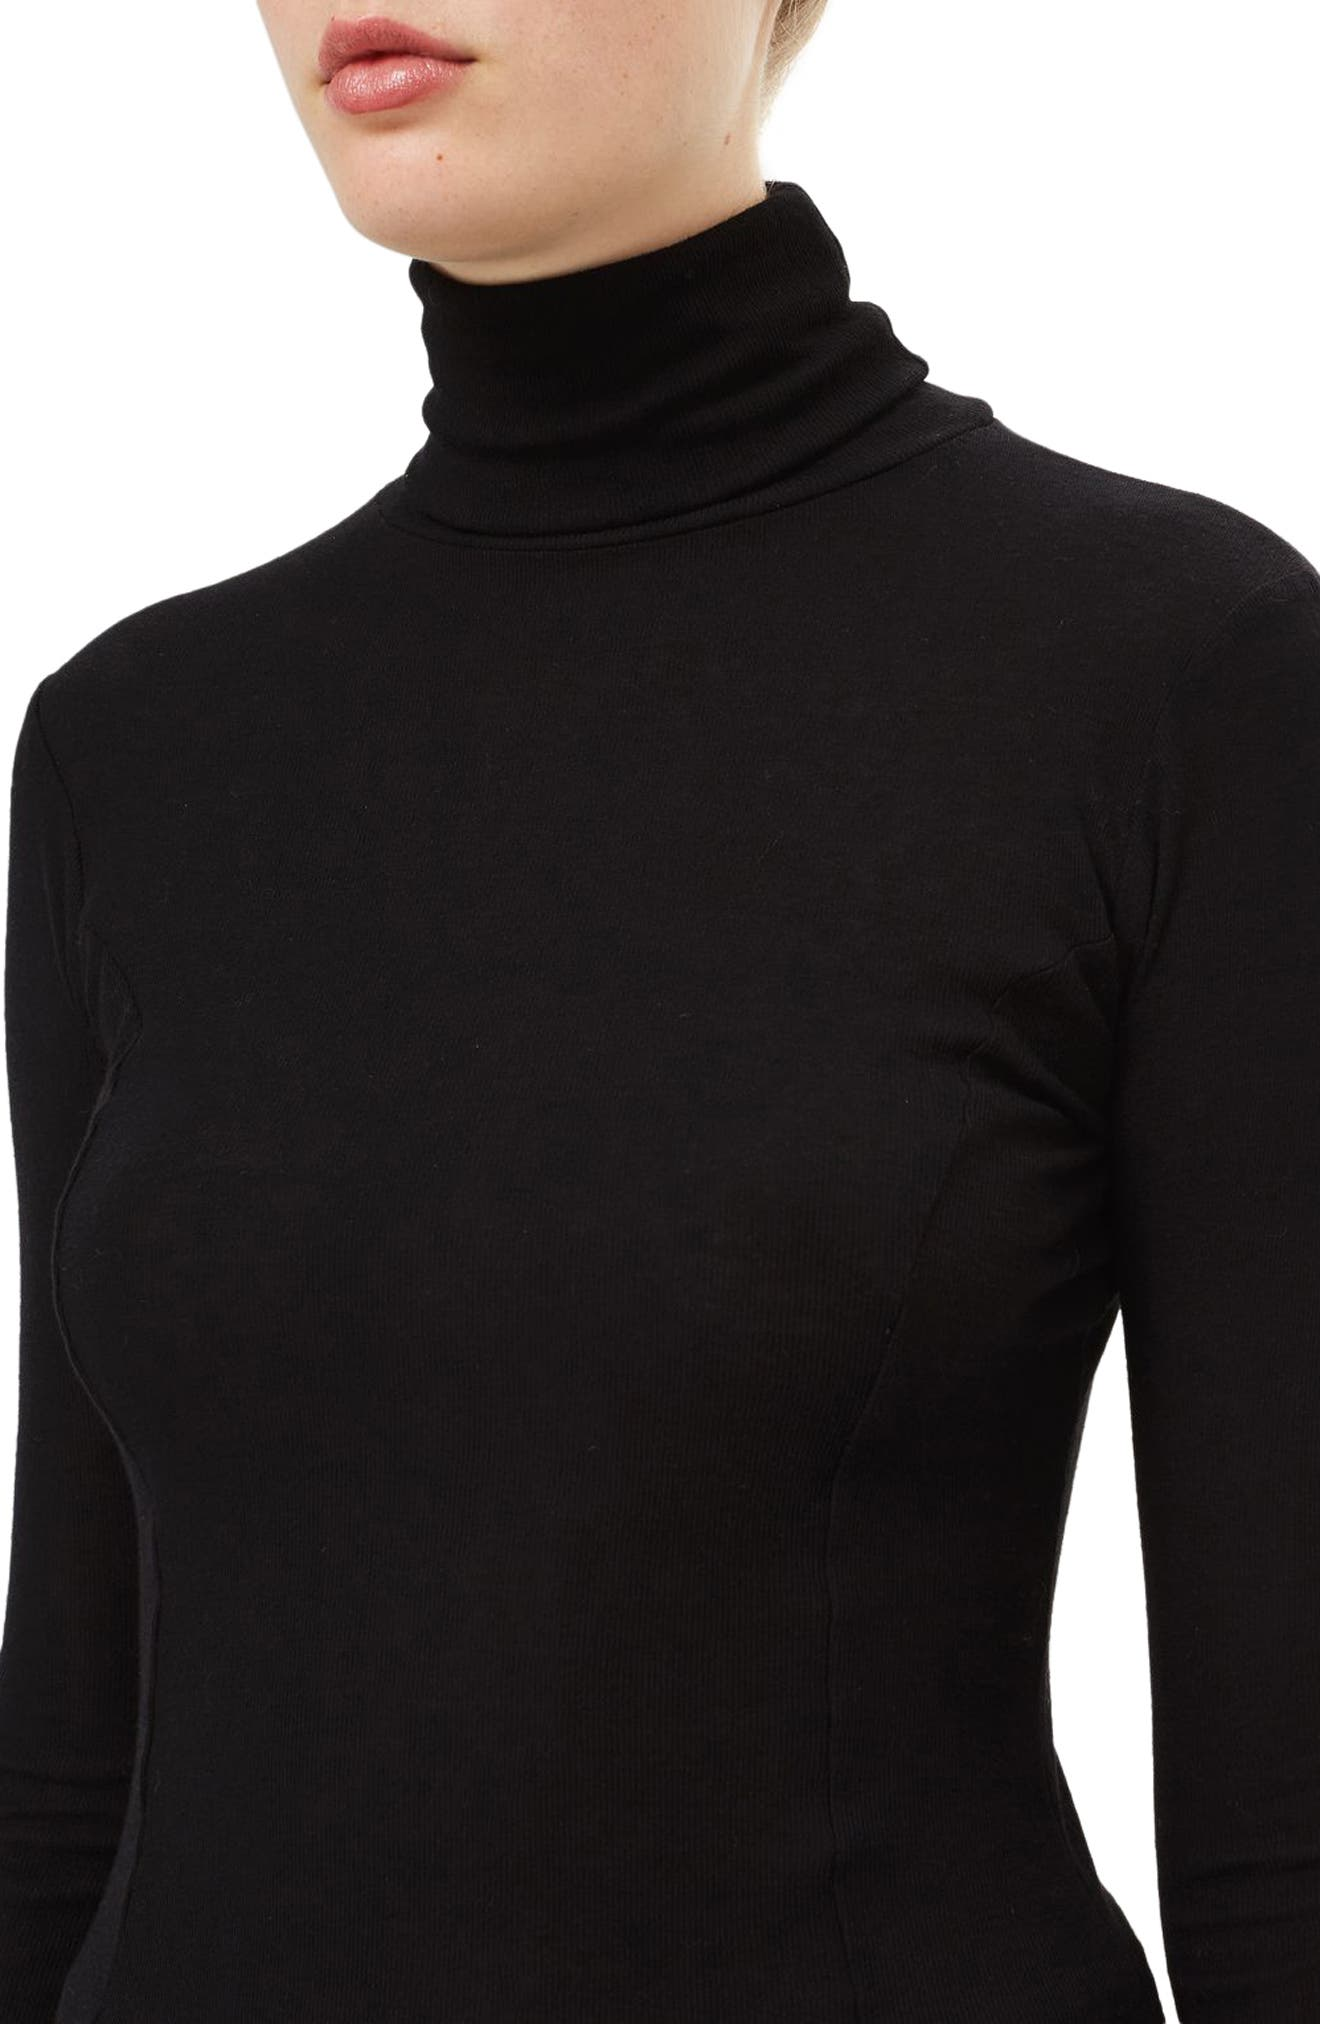 Wool Turtleneck Sweater,                             Alternate thumbnail 7, color,